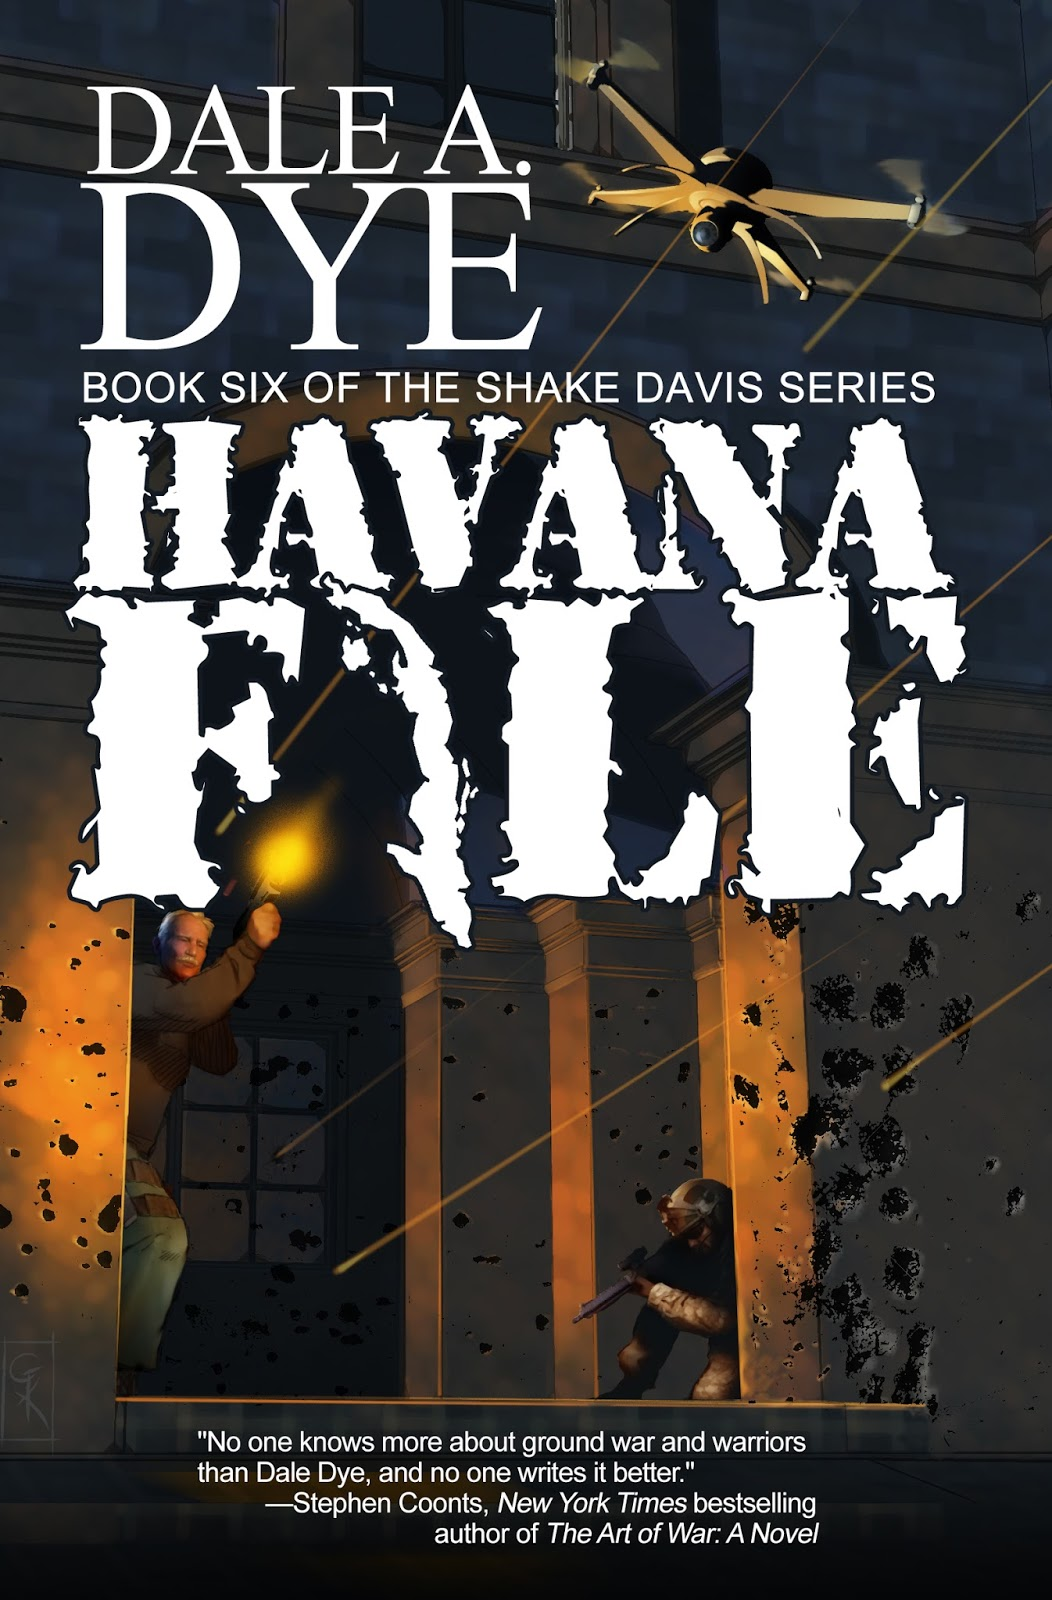 Interview with military thriller/suspense author Dale A. Daye